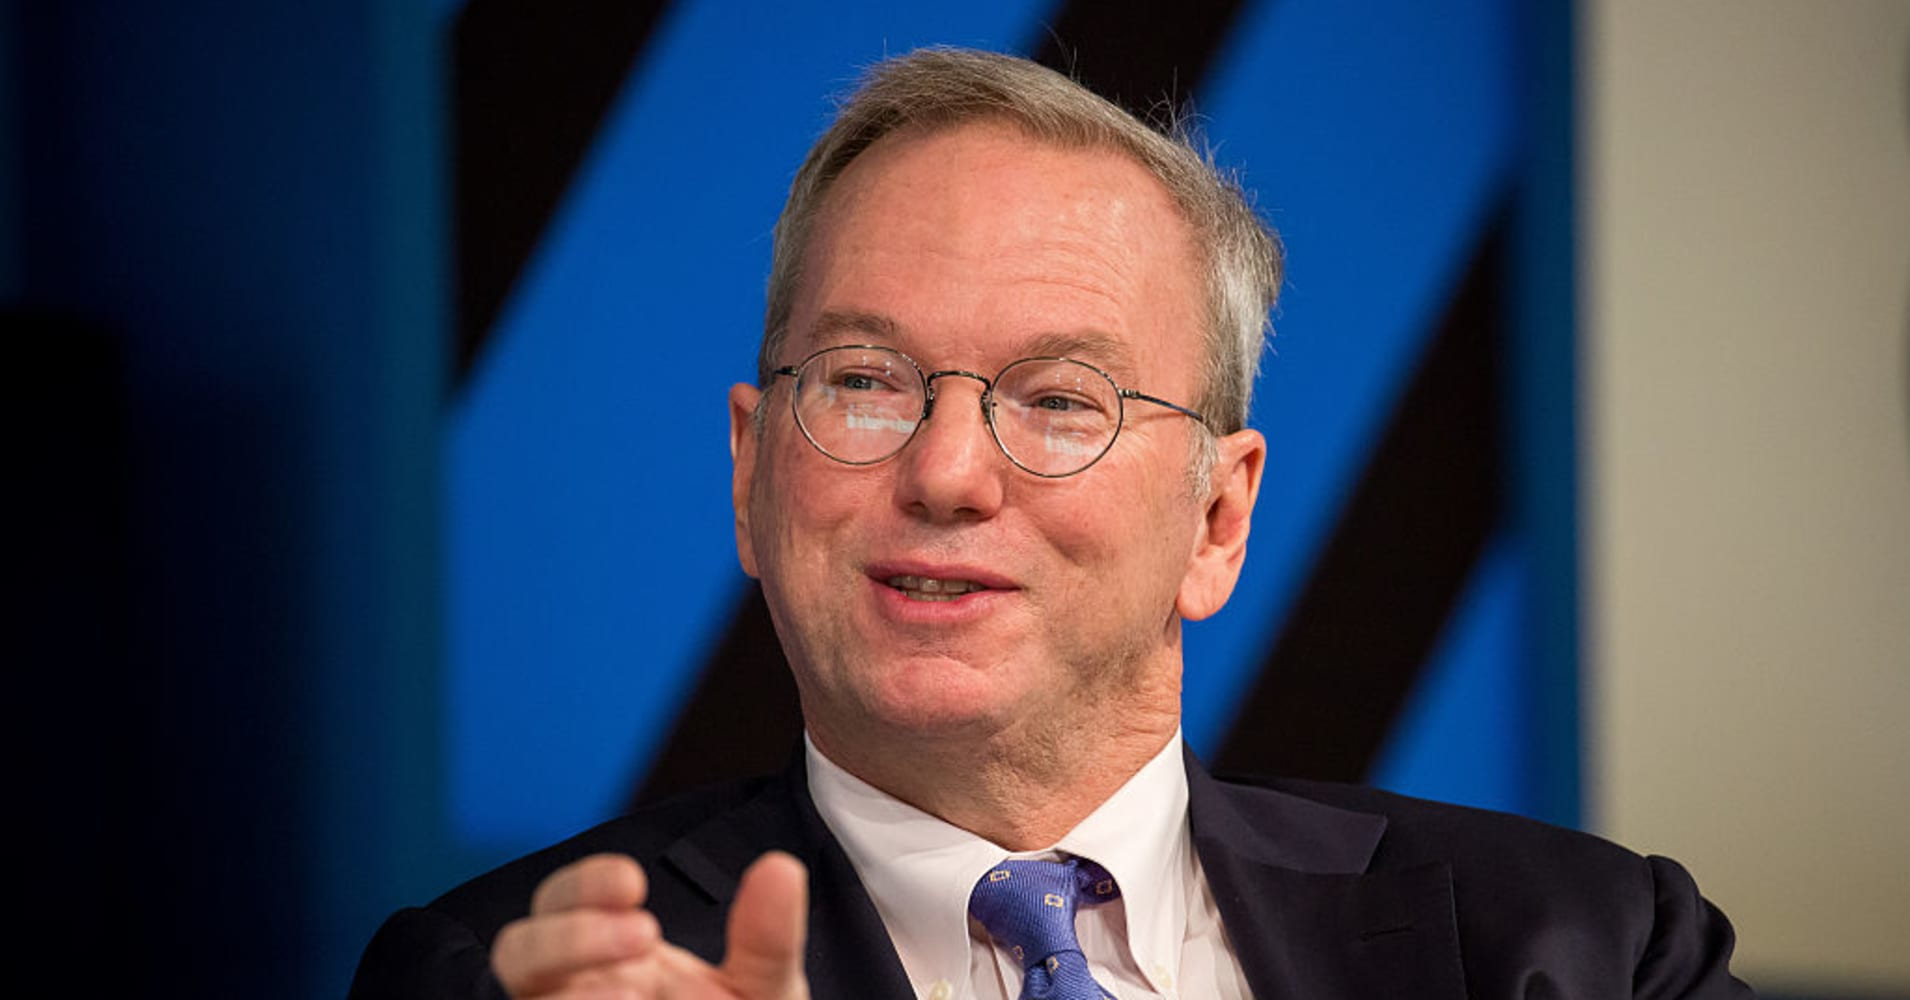 Google billionaire Eric Schmidt: These 2 qualities are the best predictors of success